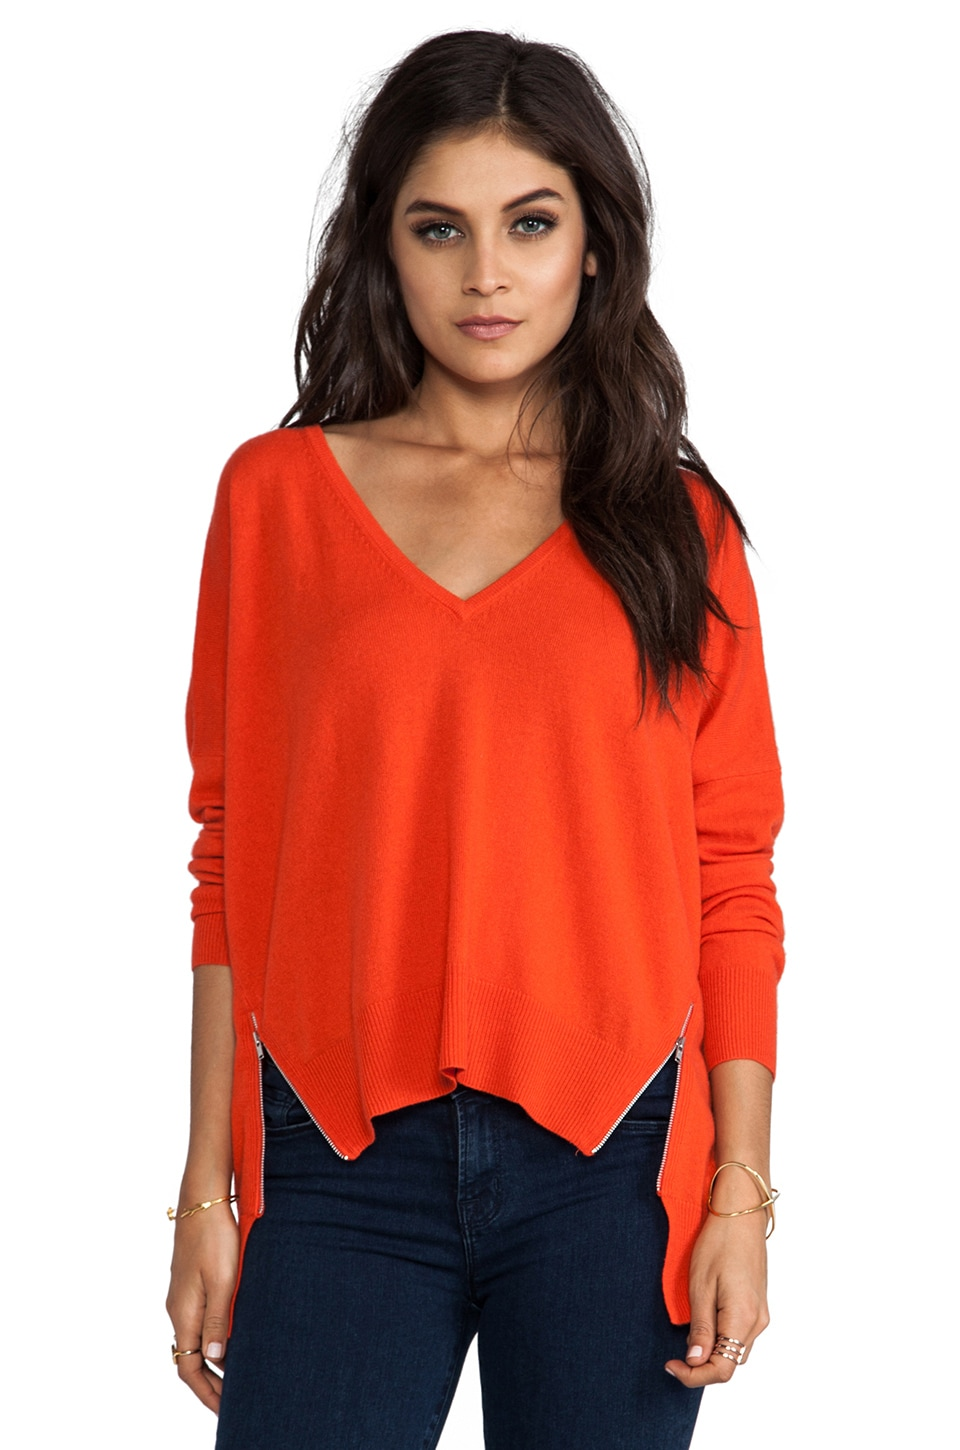 Autumn Cashmere Hi Lo V Neck Pullover With Zippers in Koi